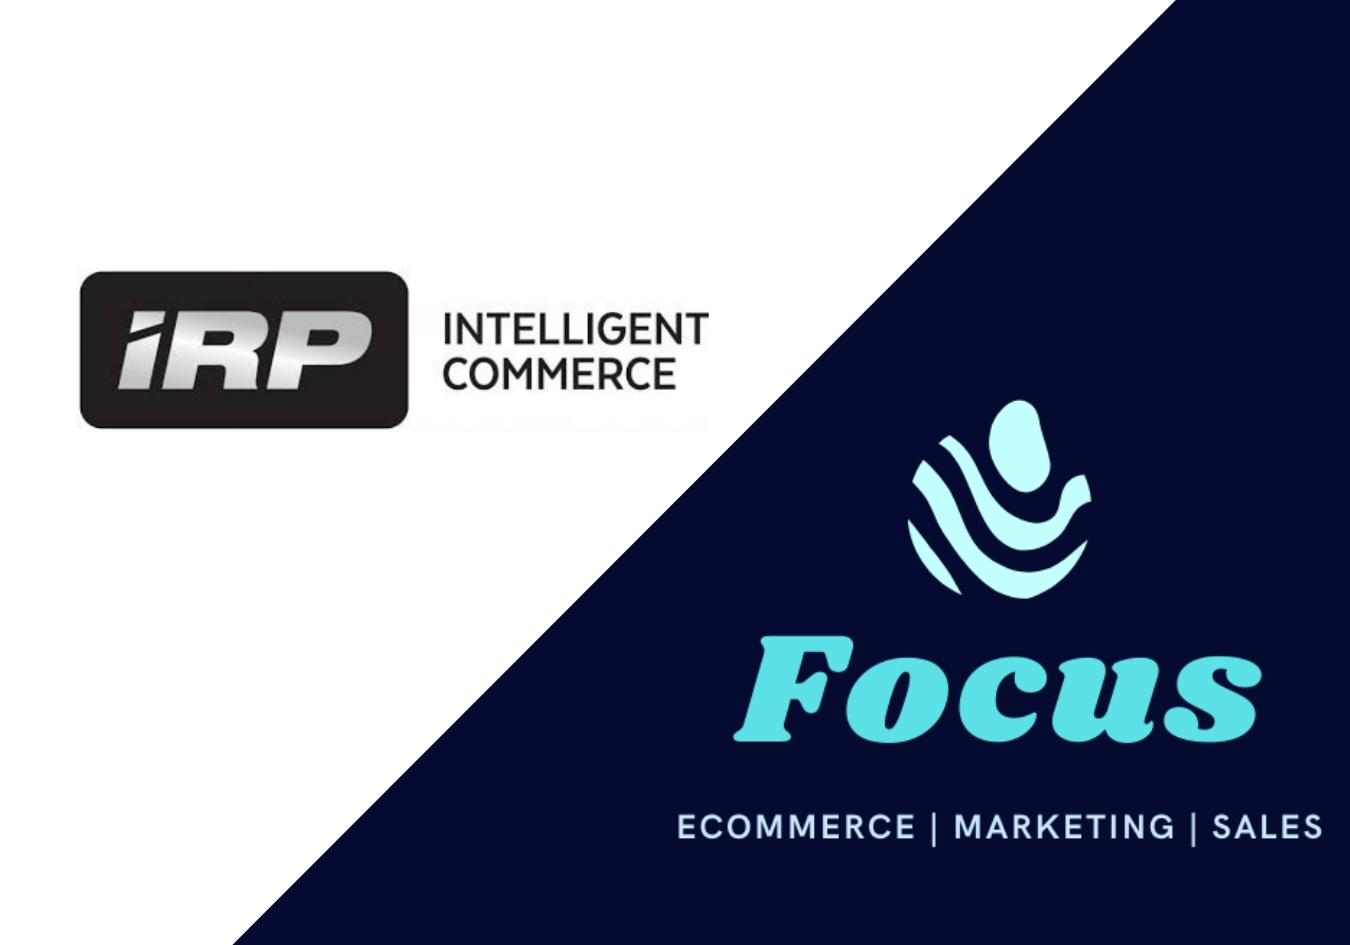 IRP Commerce | Focus Ecommerce and Marketing